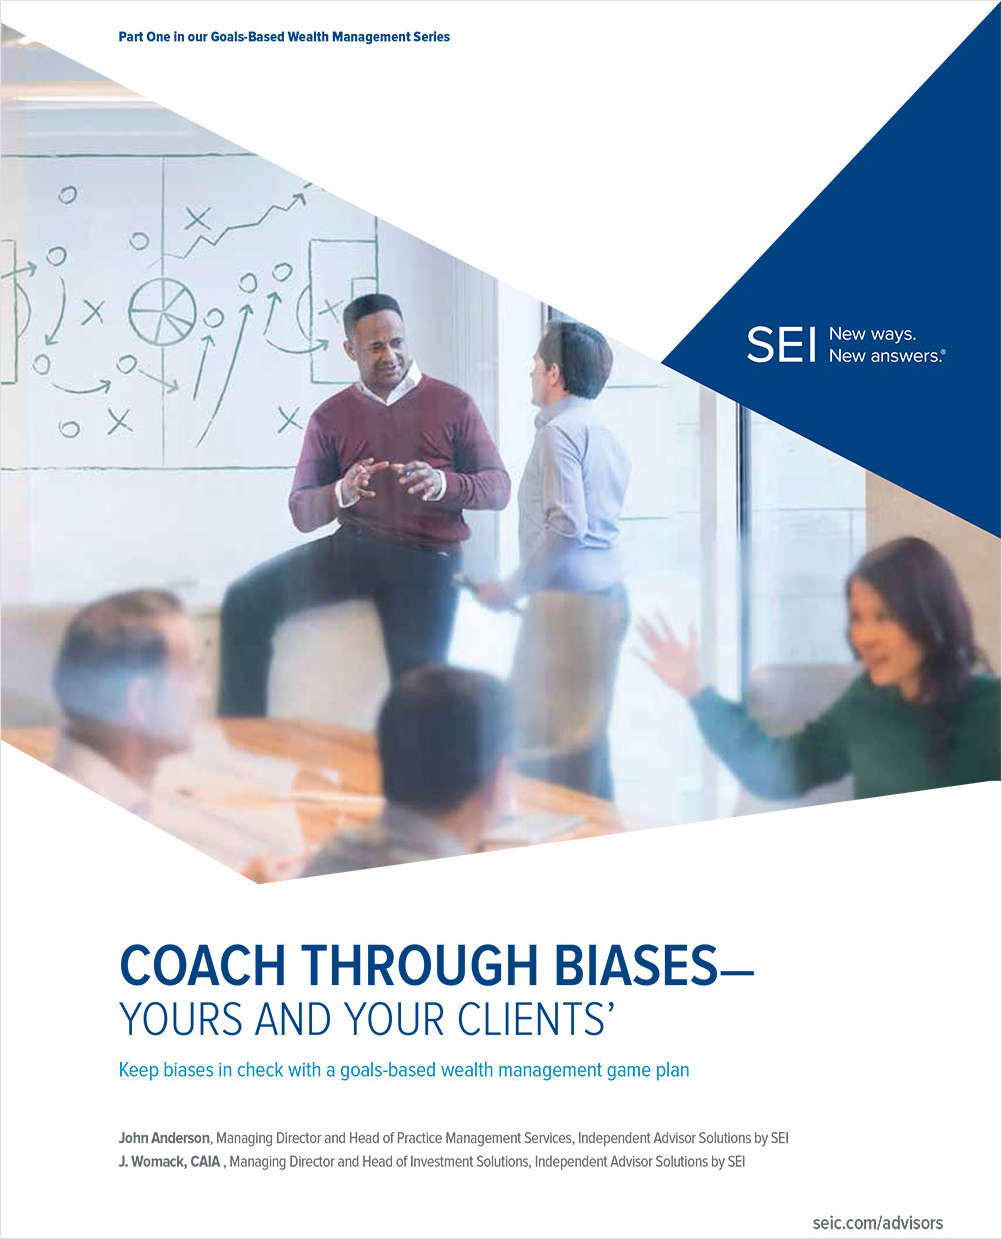 Coach Through Biases - Yours and Your Clients'